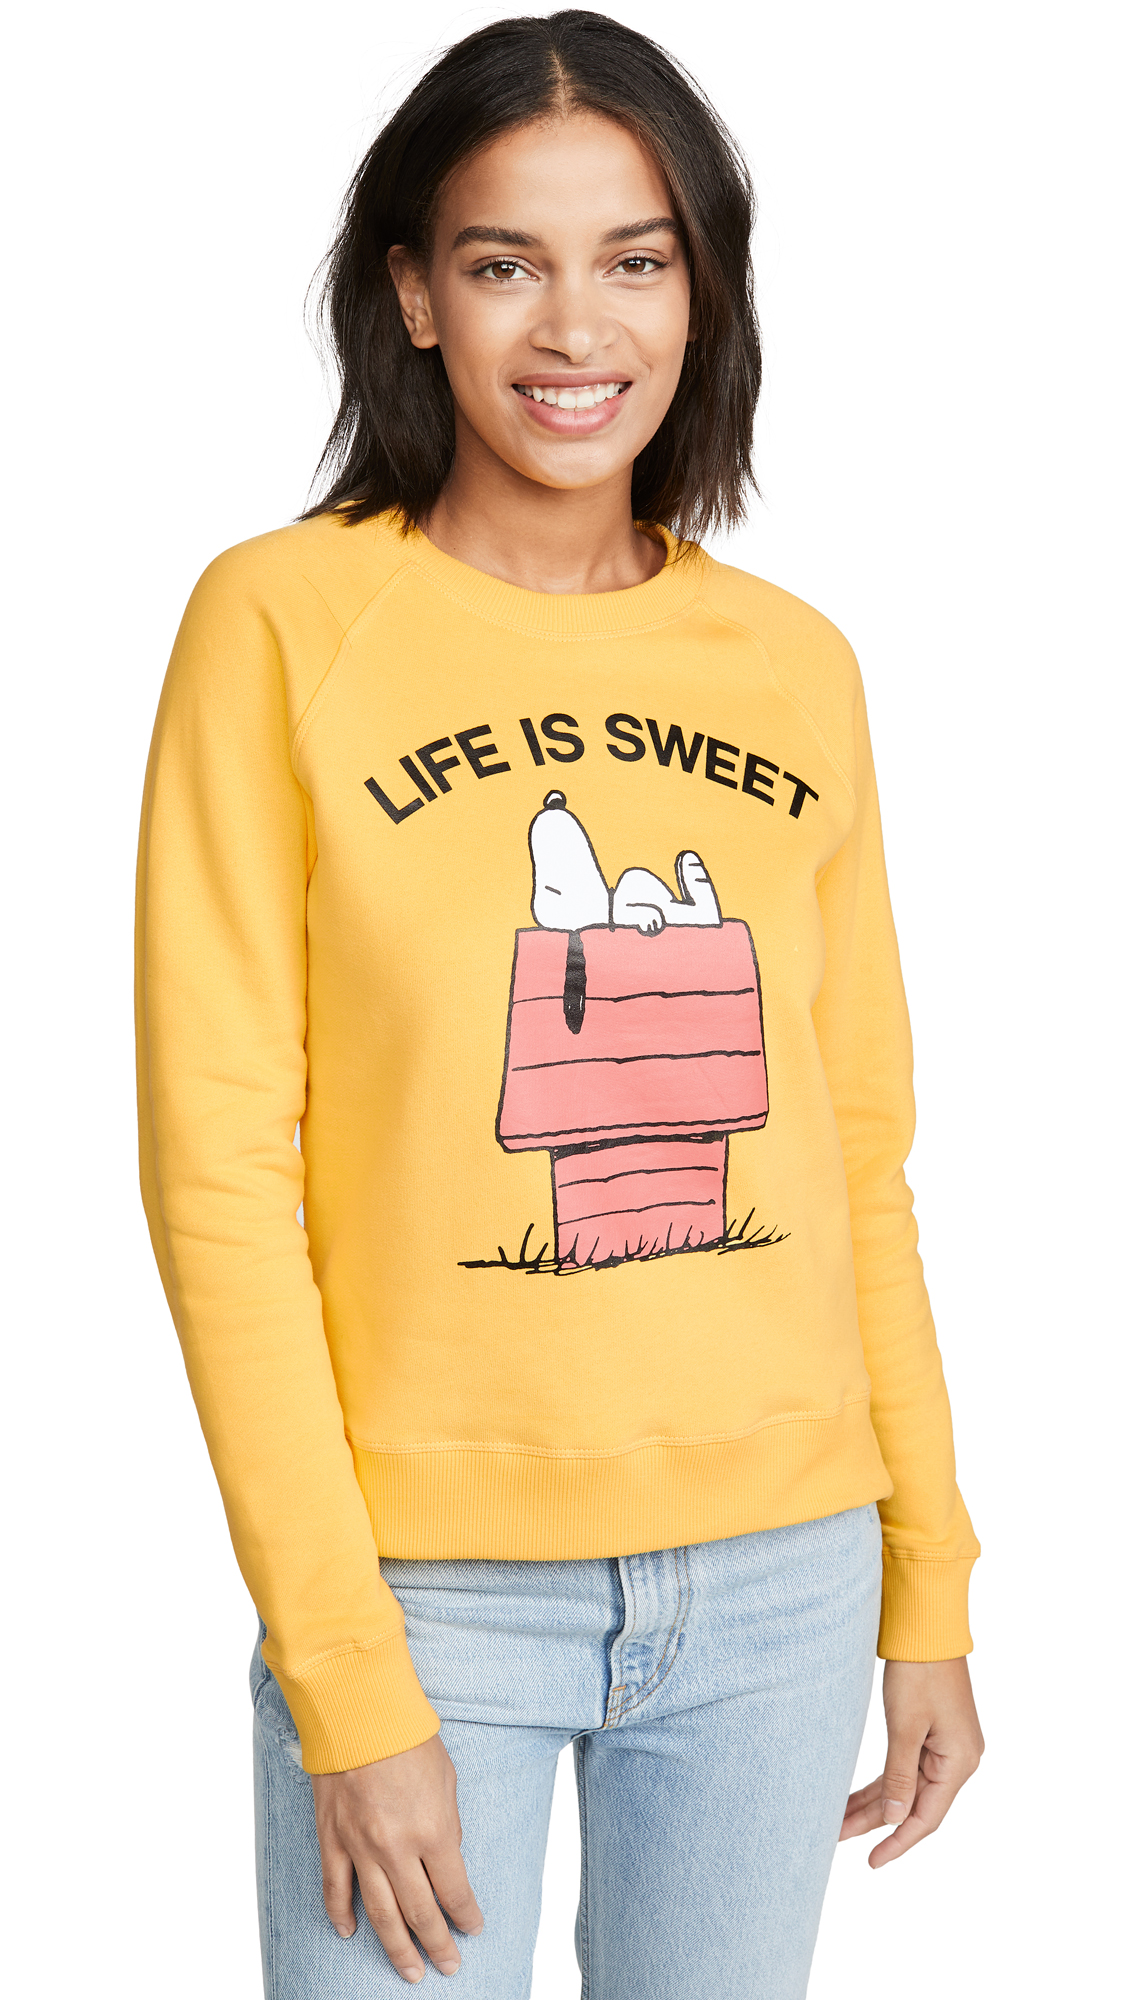 Chinti and Parker Life Is Sweet Sweatshirt - Yellow